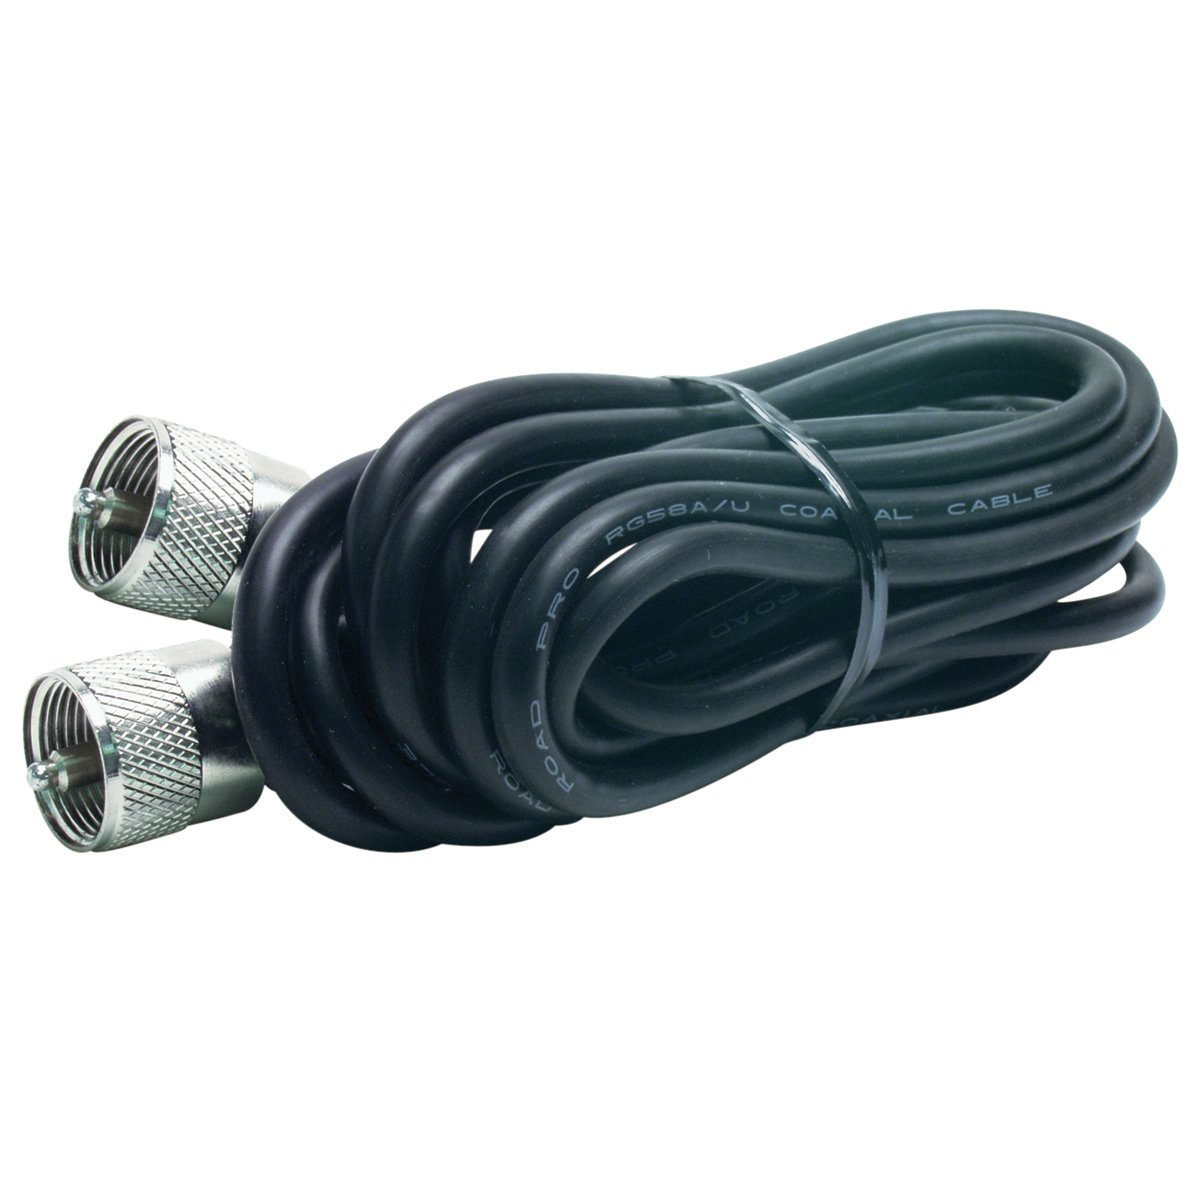 RoadPro RP-12CC 12-Feet CB Antenna Coax Cable with PL-259 Connector